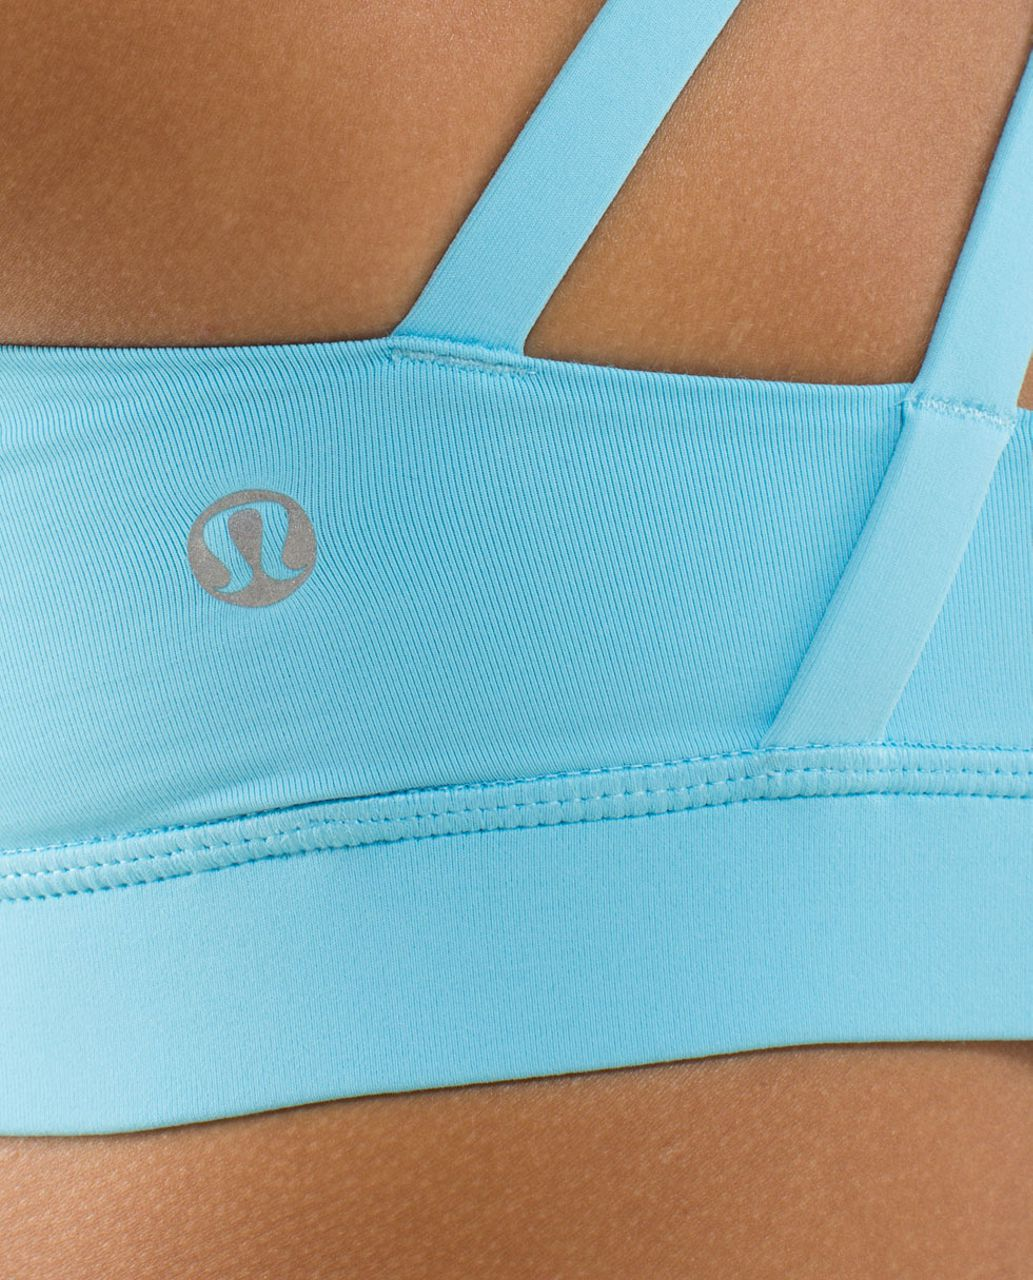 Lululemon Energy Bra - Blue Moon